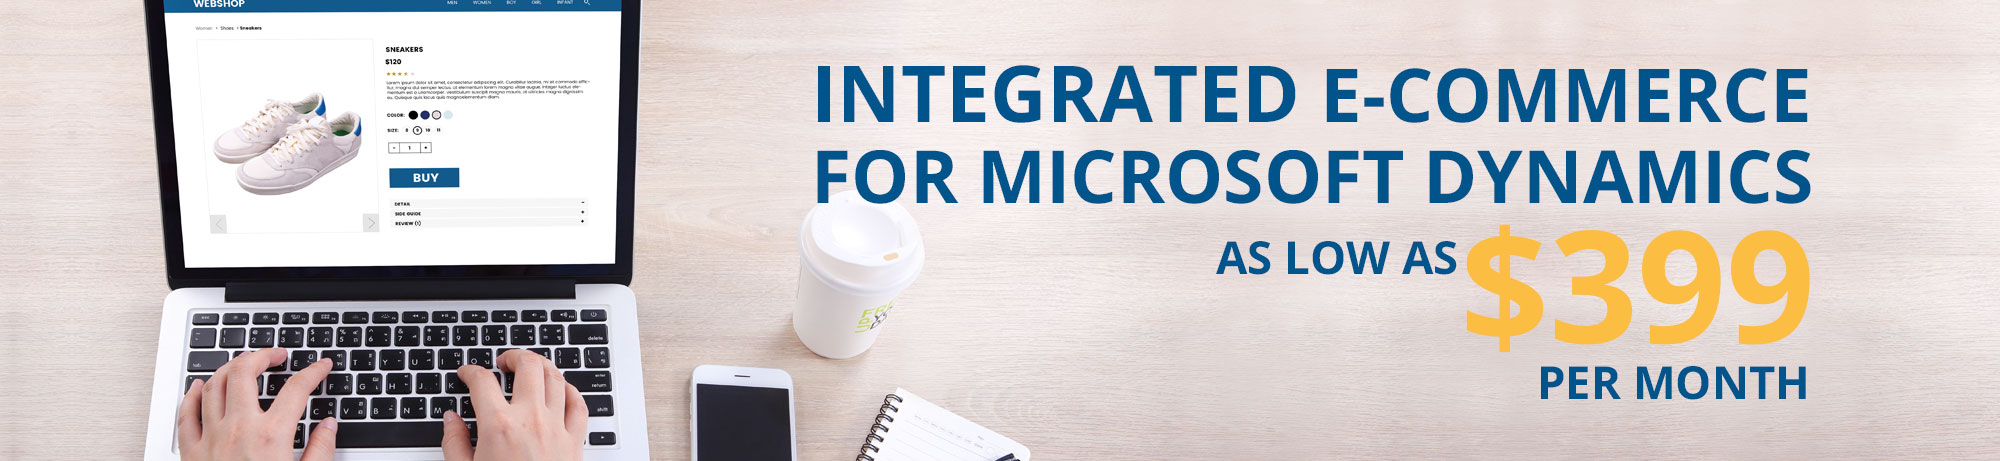 Integrated e-commerce for Microsoft Dynamics